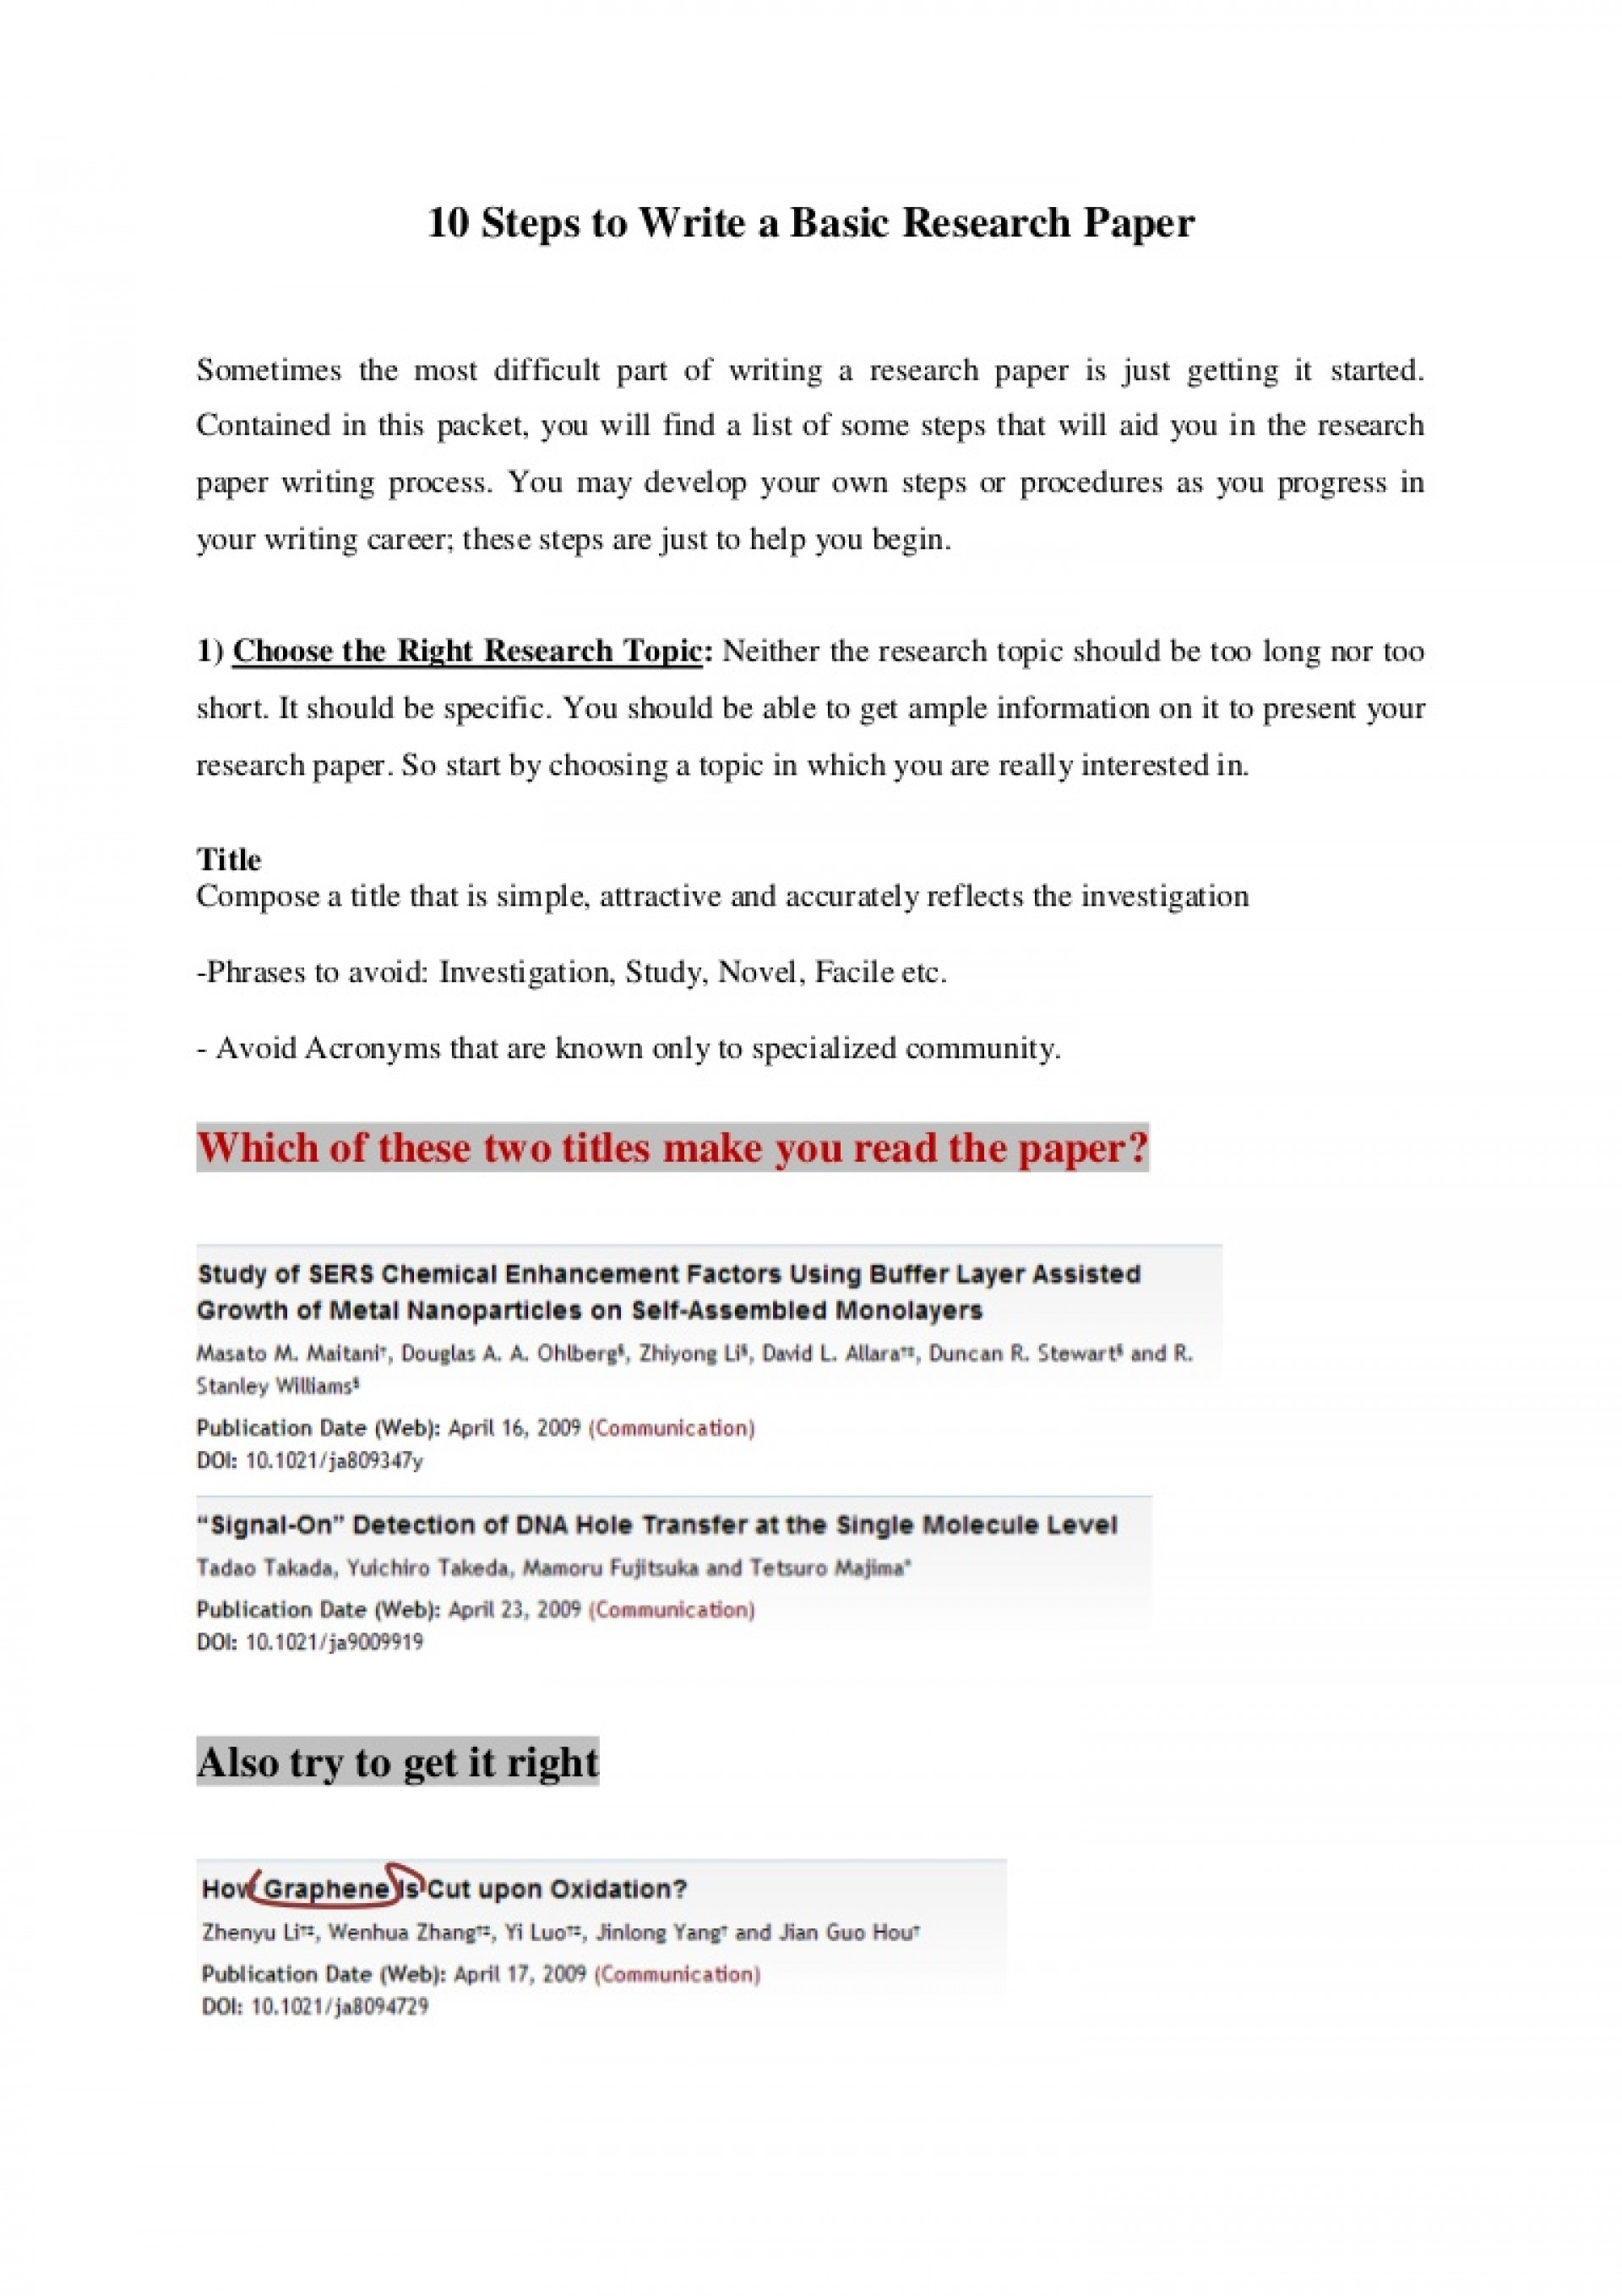 001 Steps Writing Research Paper 10stepstowriteabasicresearchpaper Thumbnail Best 10 To A Page Pdf 1920